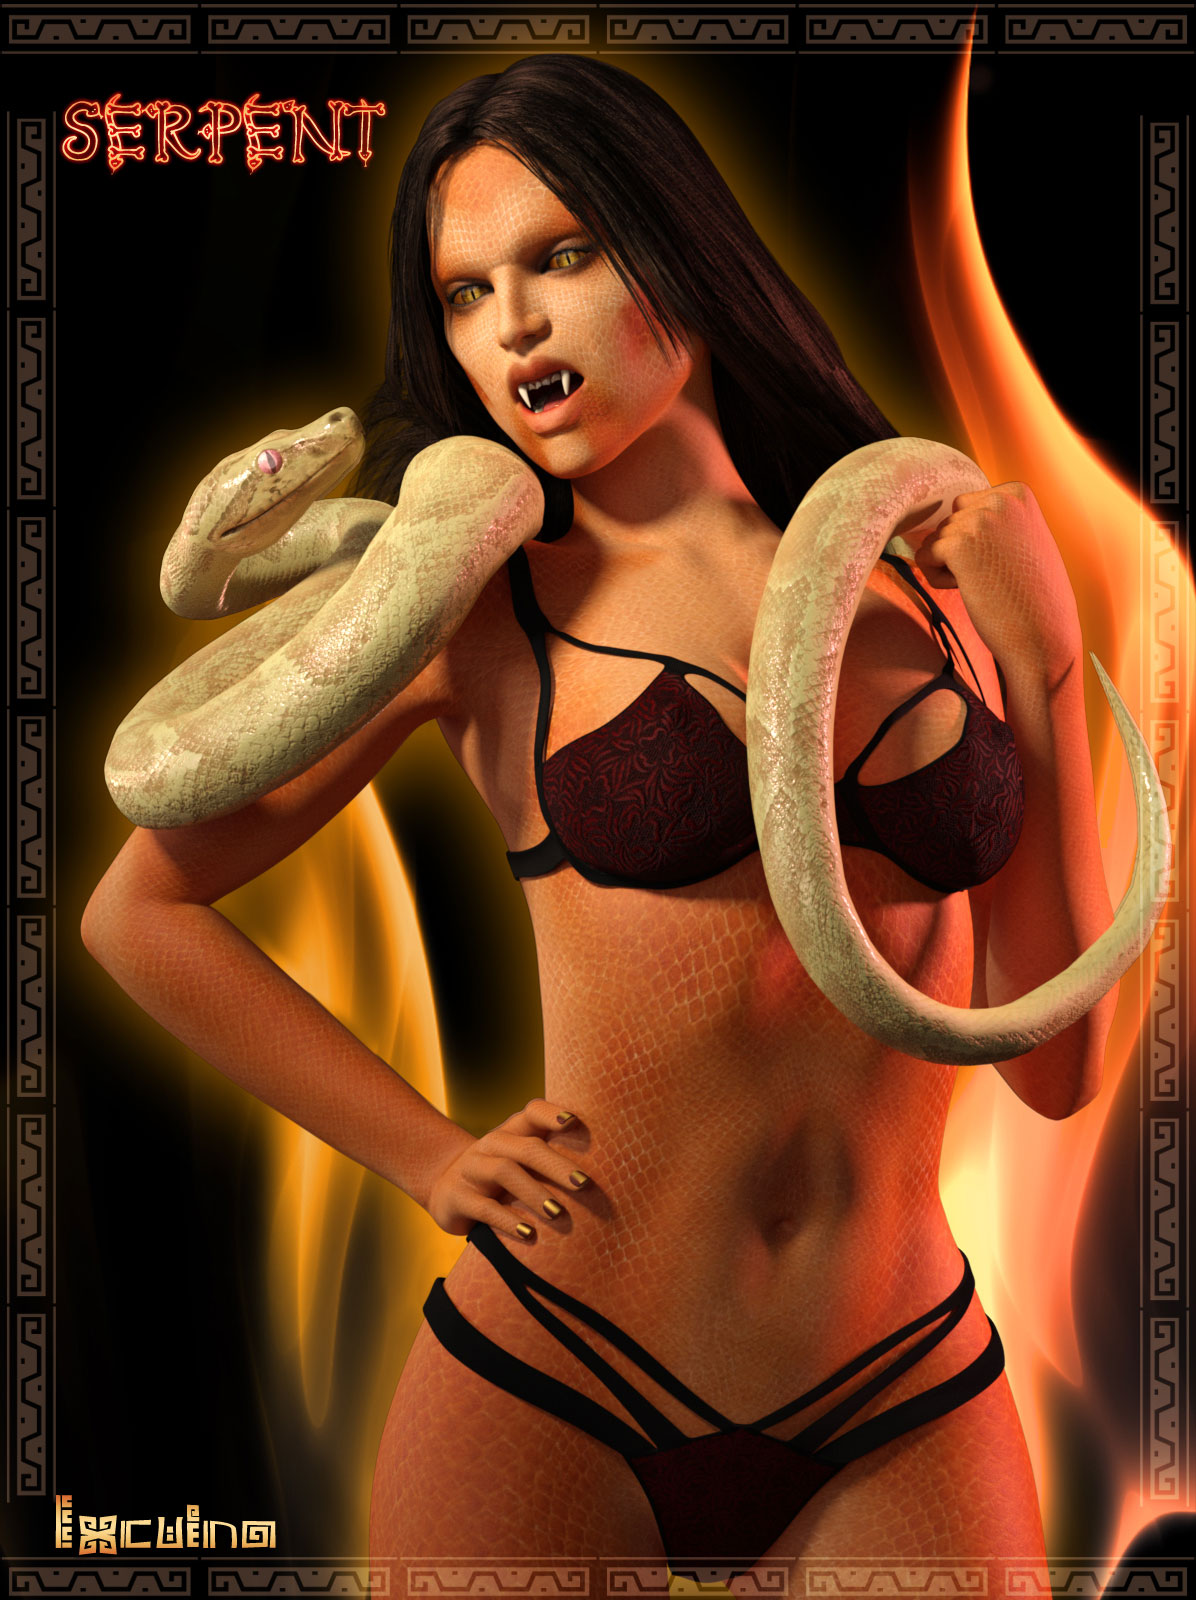 Ixcuina Serpent Addon for G3F_DAZ3D下载站